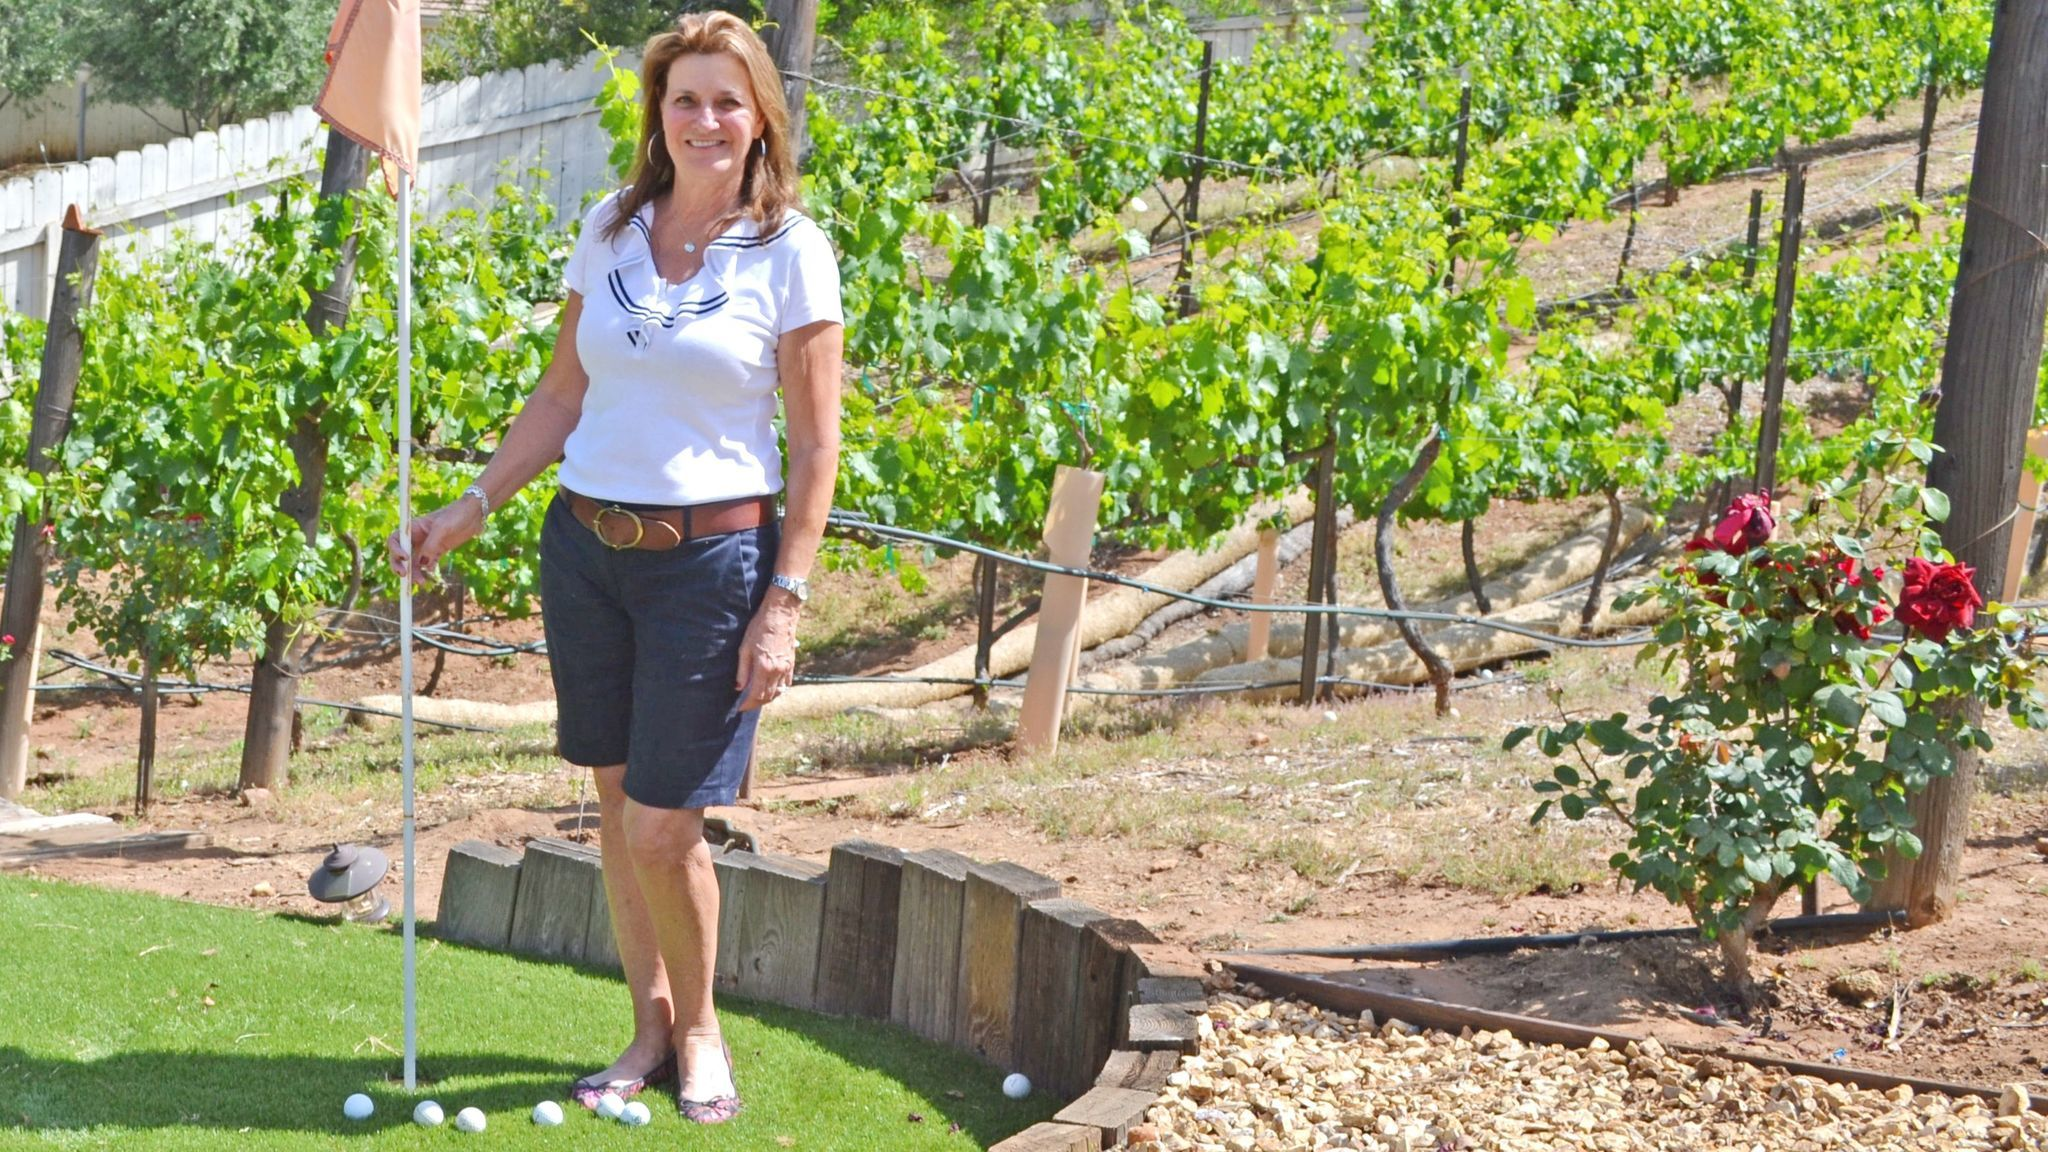 Angela Risotti-Rios stands on one of the three putting greens in their backyard with the vineyard behind her.